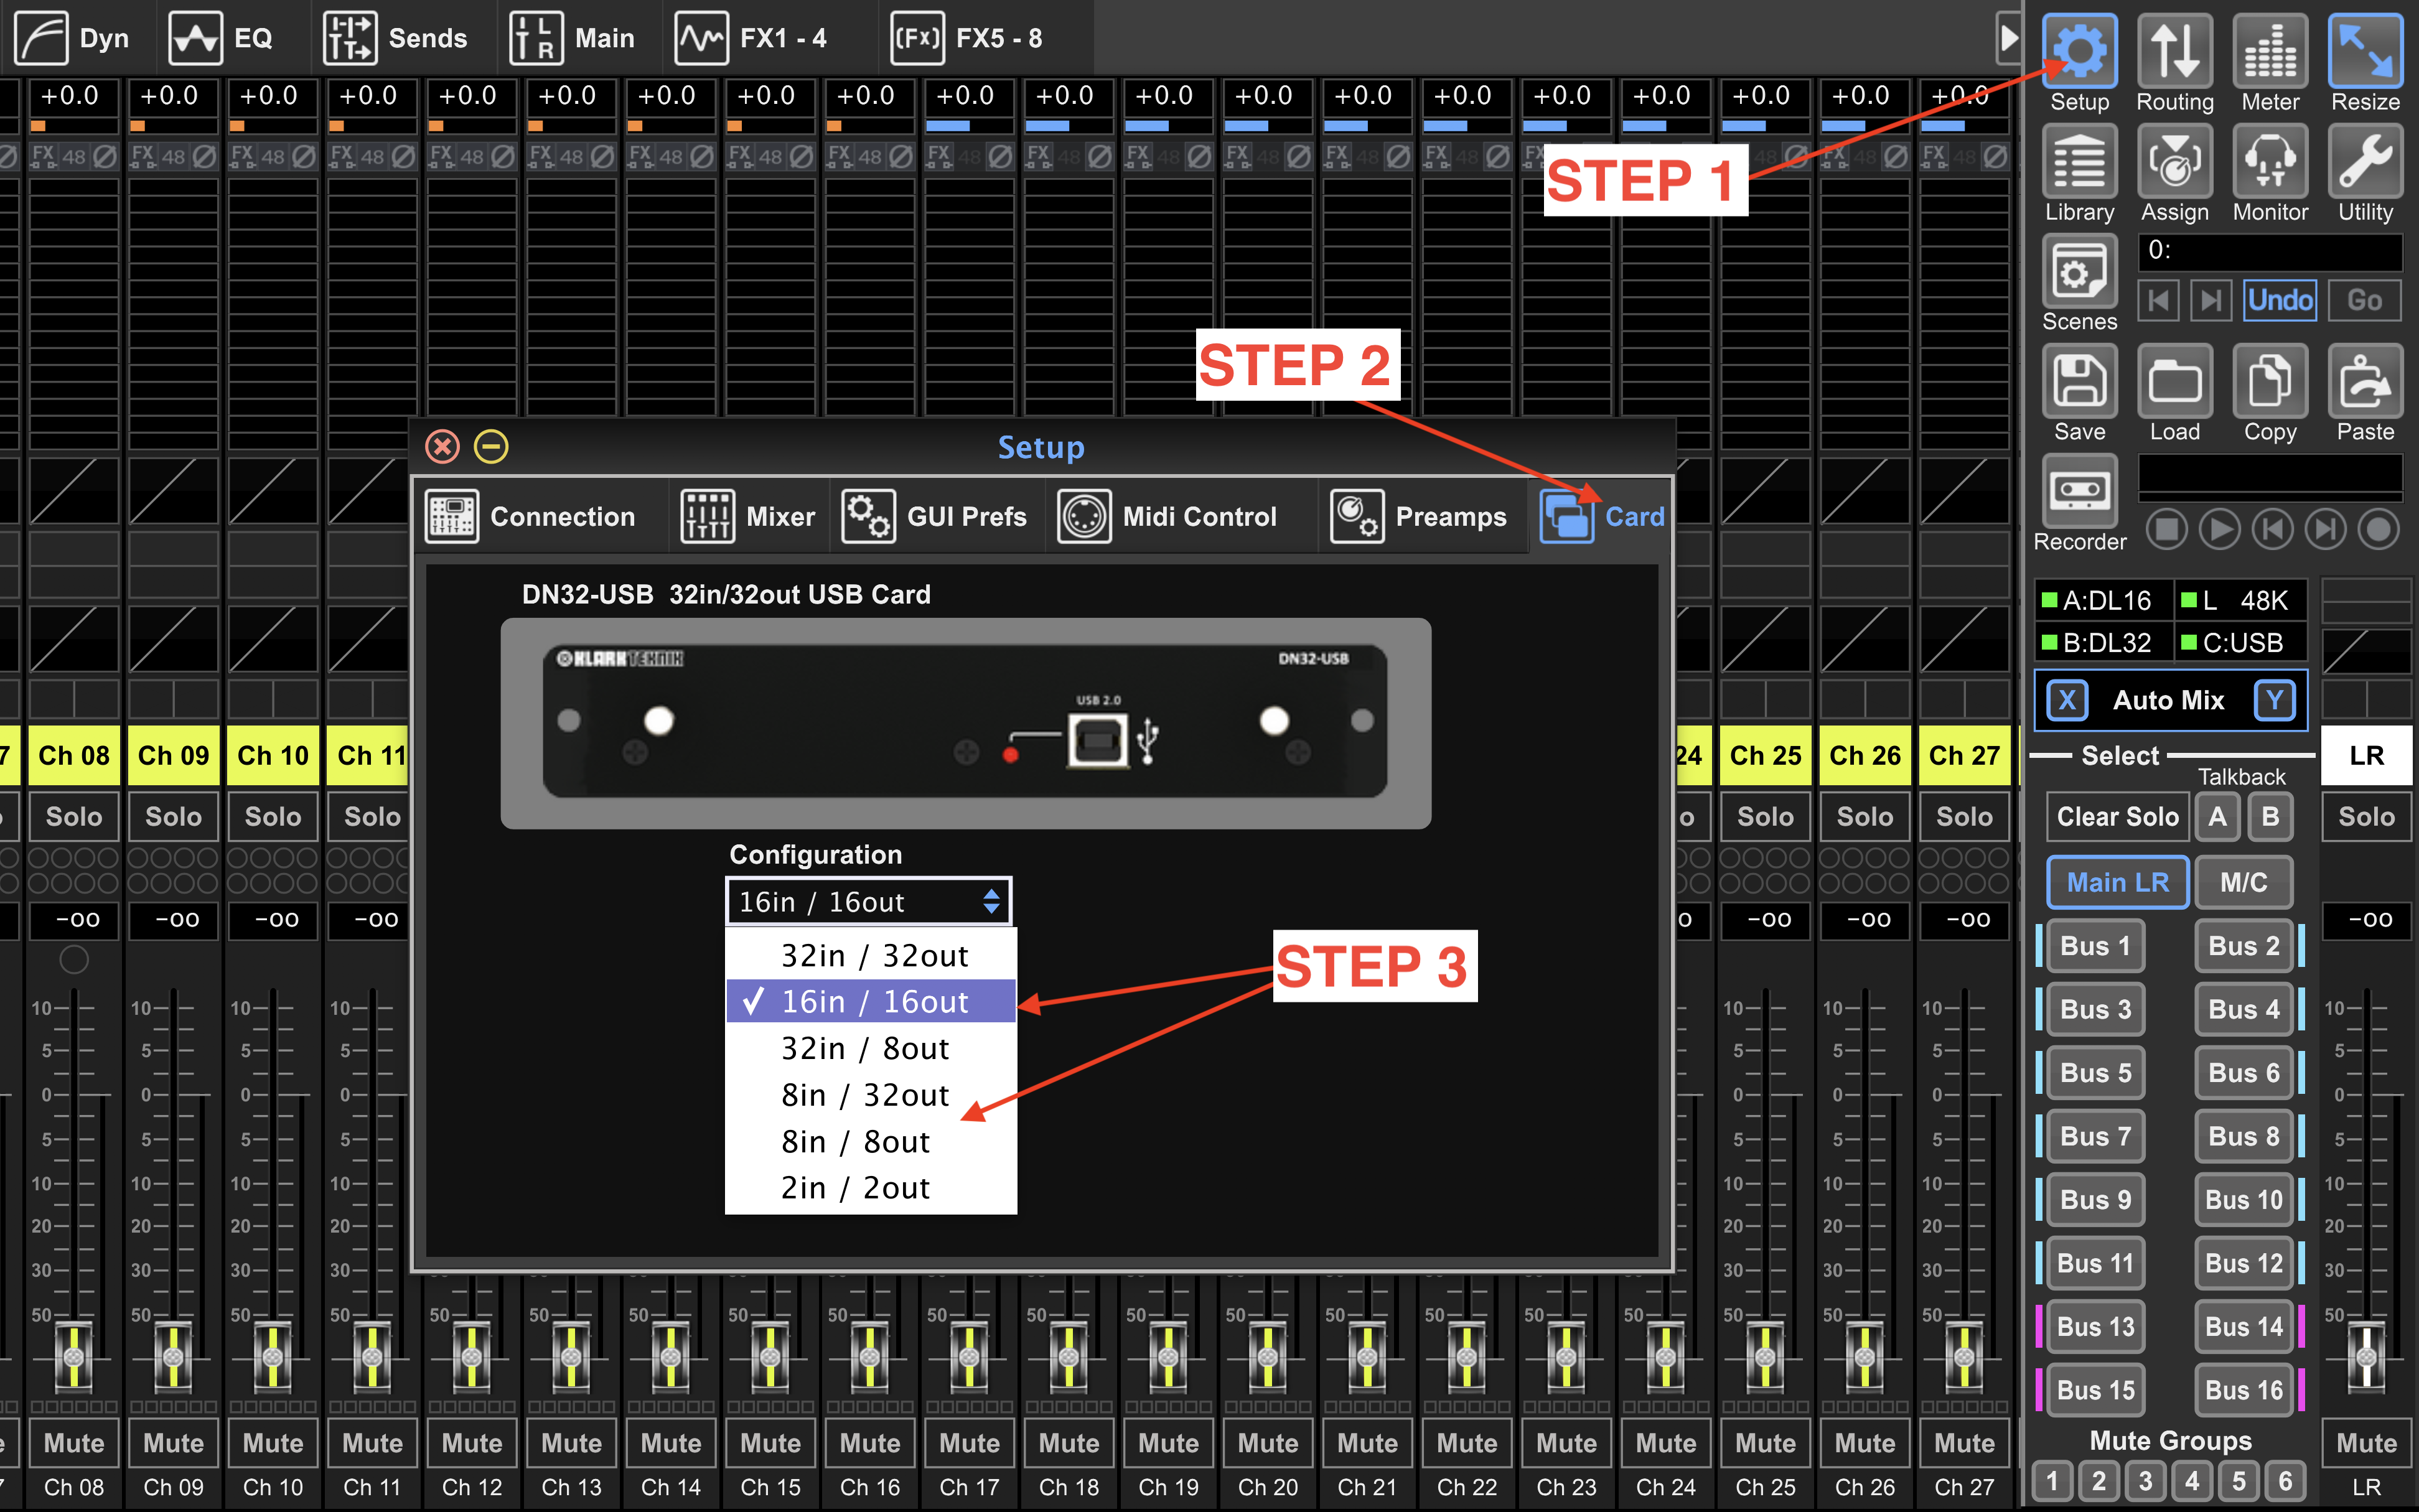 Use M32/X32 Edit software to navigate to Setup -> Card -> Configuration.